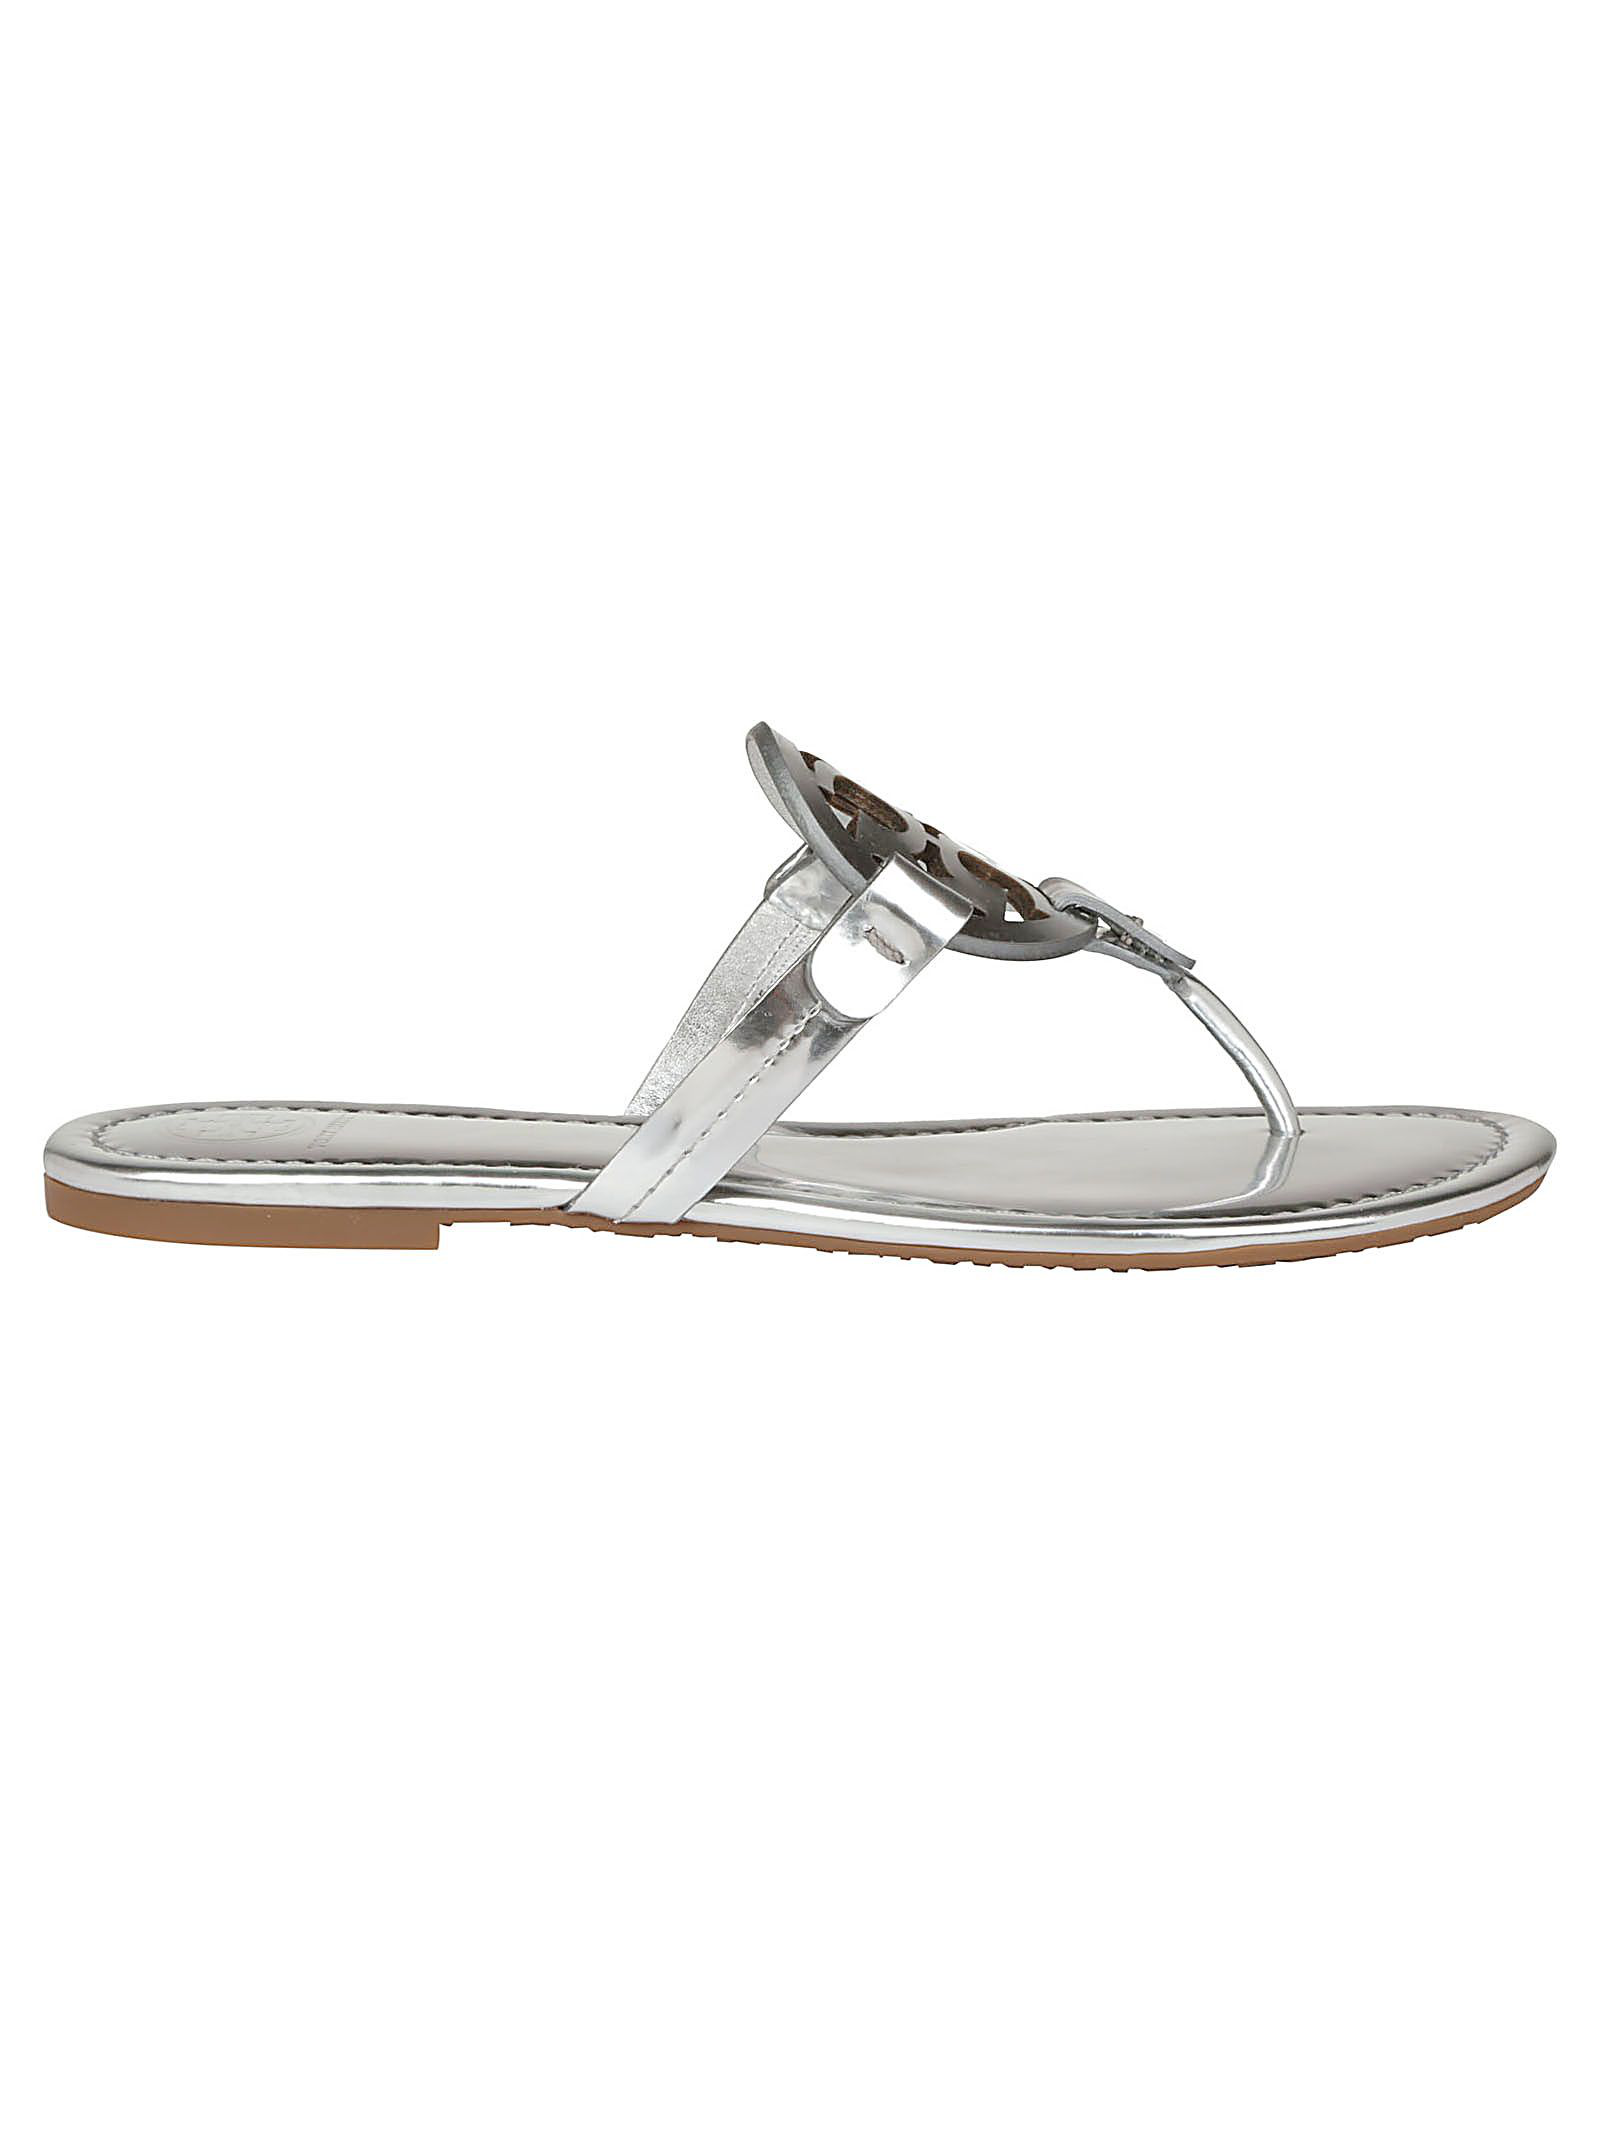 2c72ad89d264 Tory Burch Miller Sandal In Silver